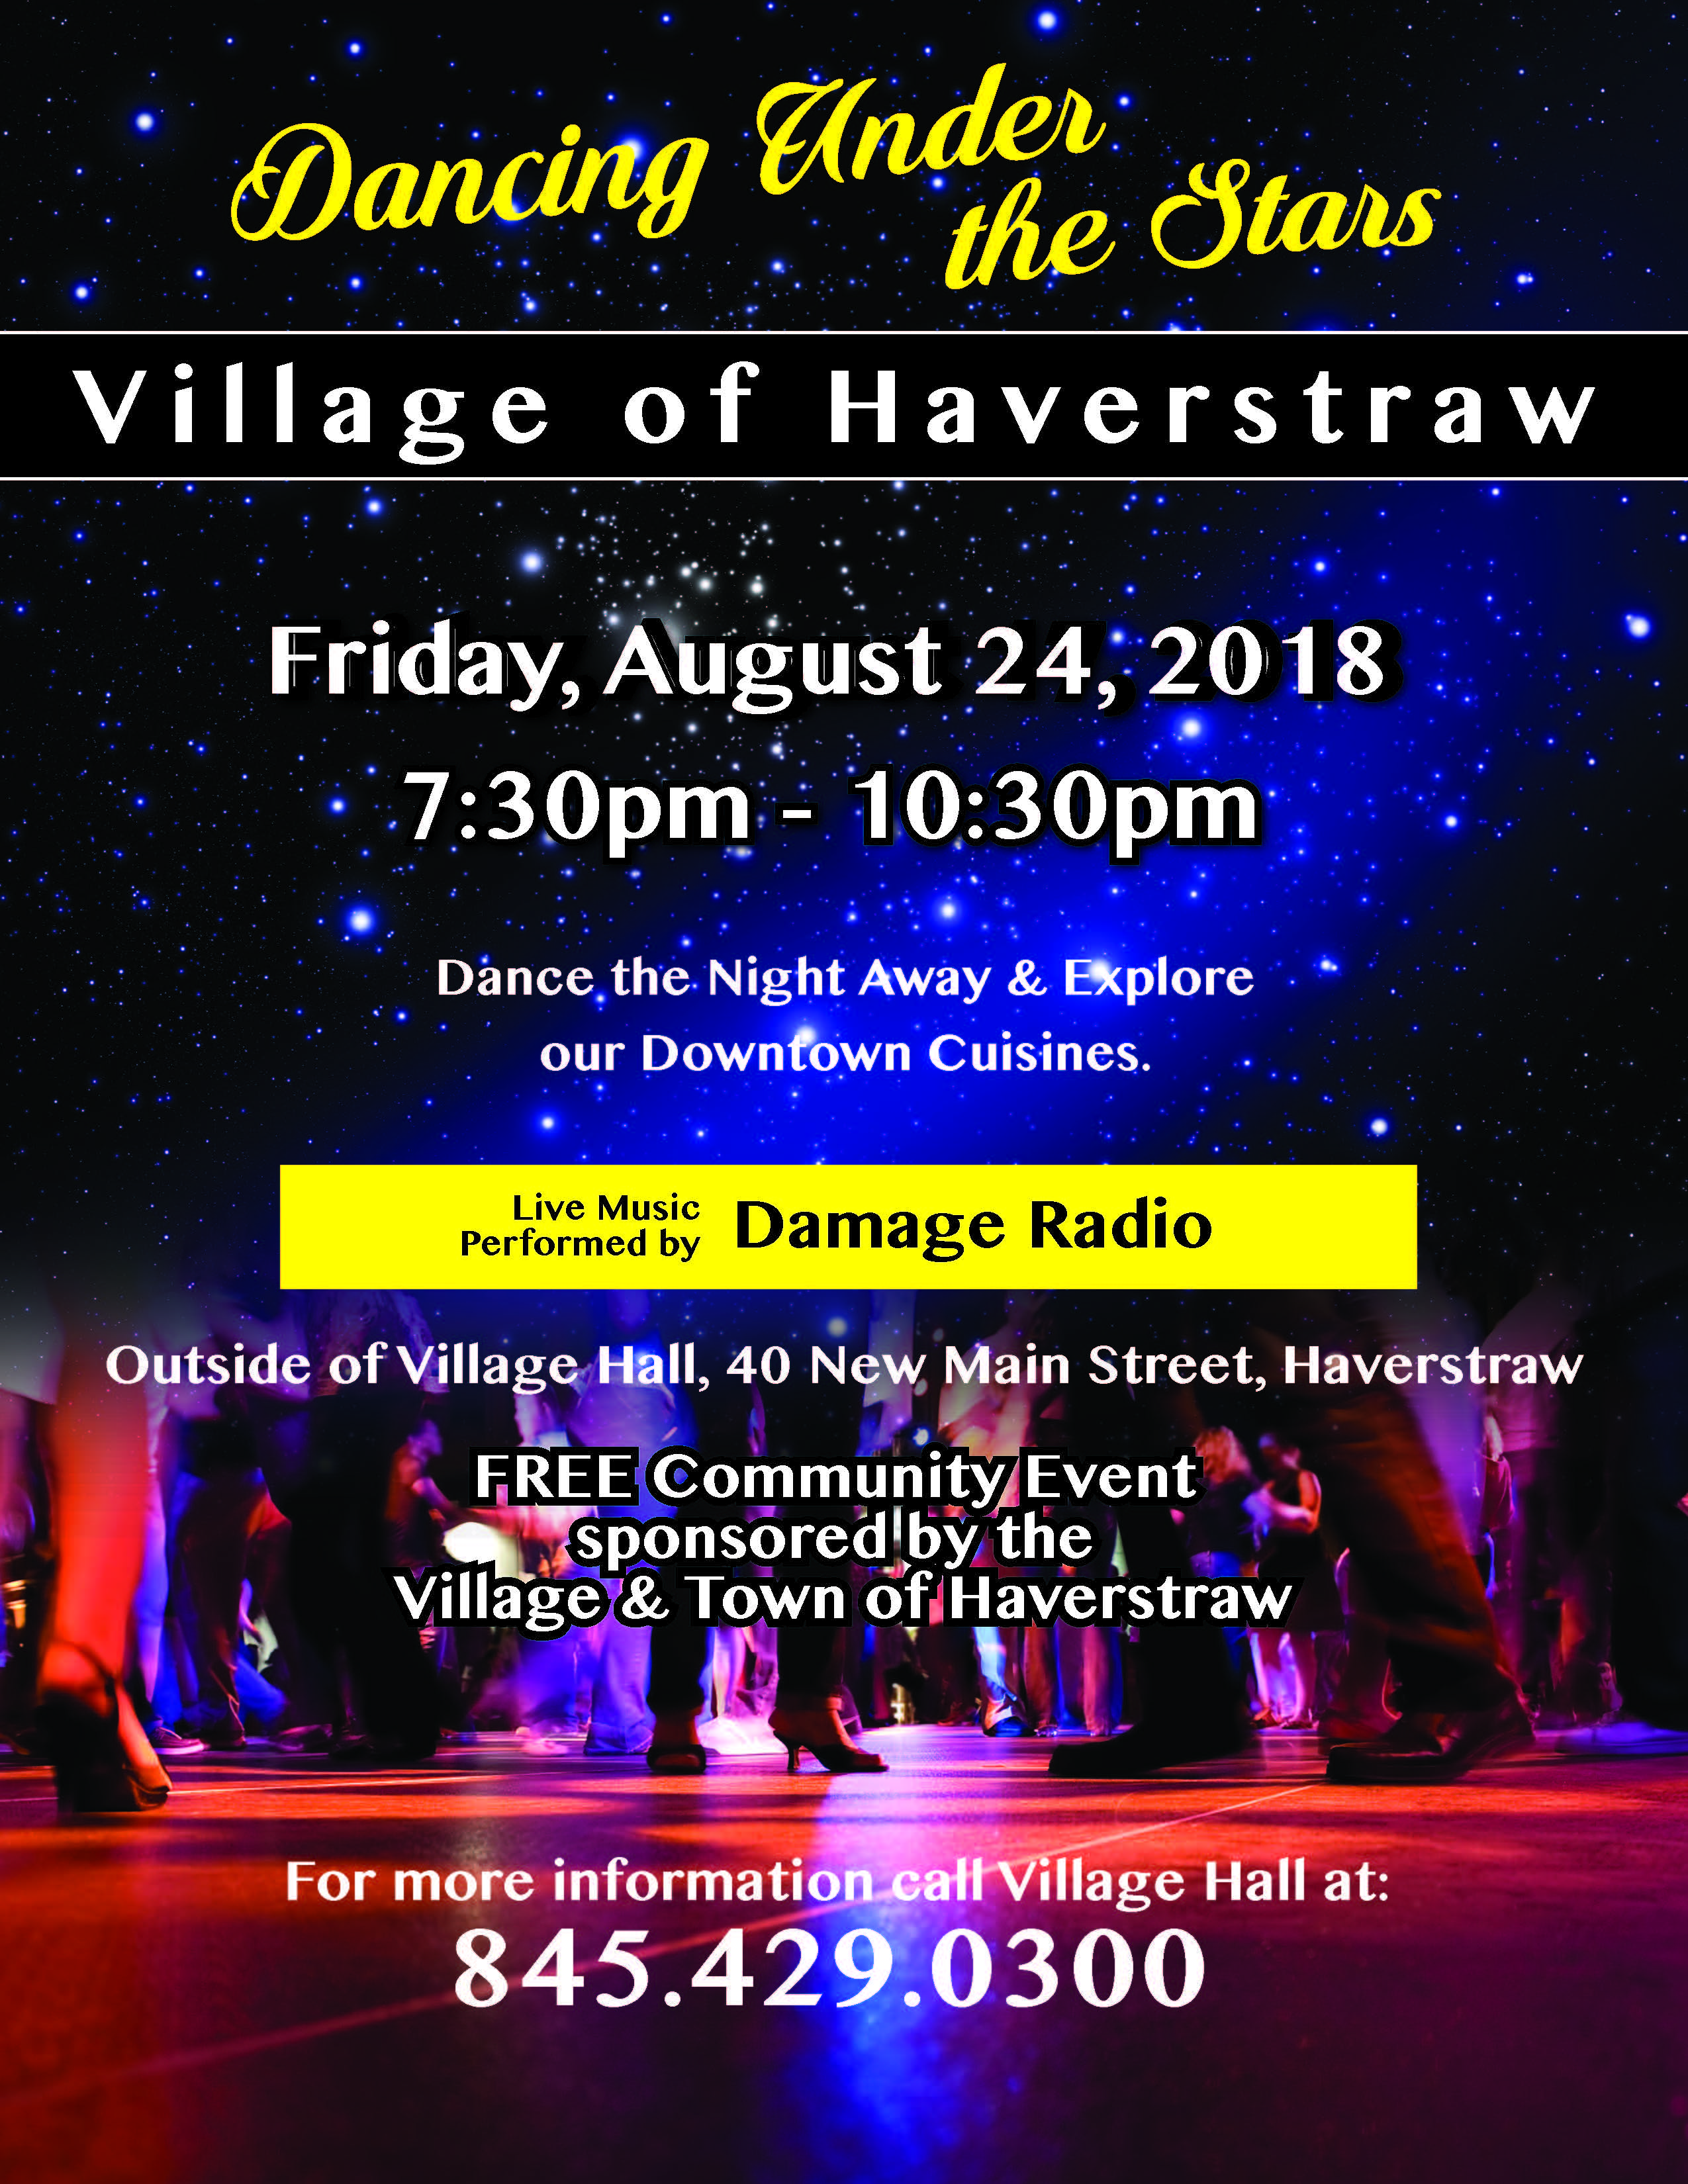 Dancing Under the Stars | The Village of Haverstraw New York